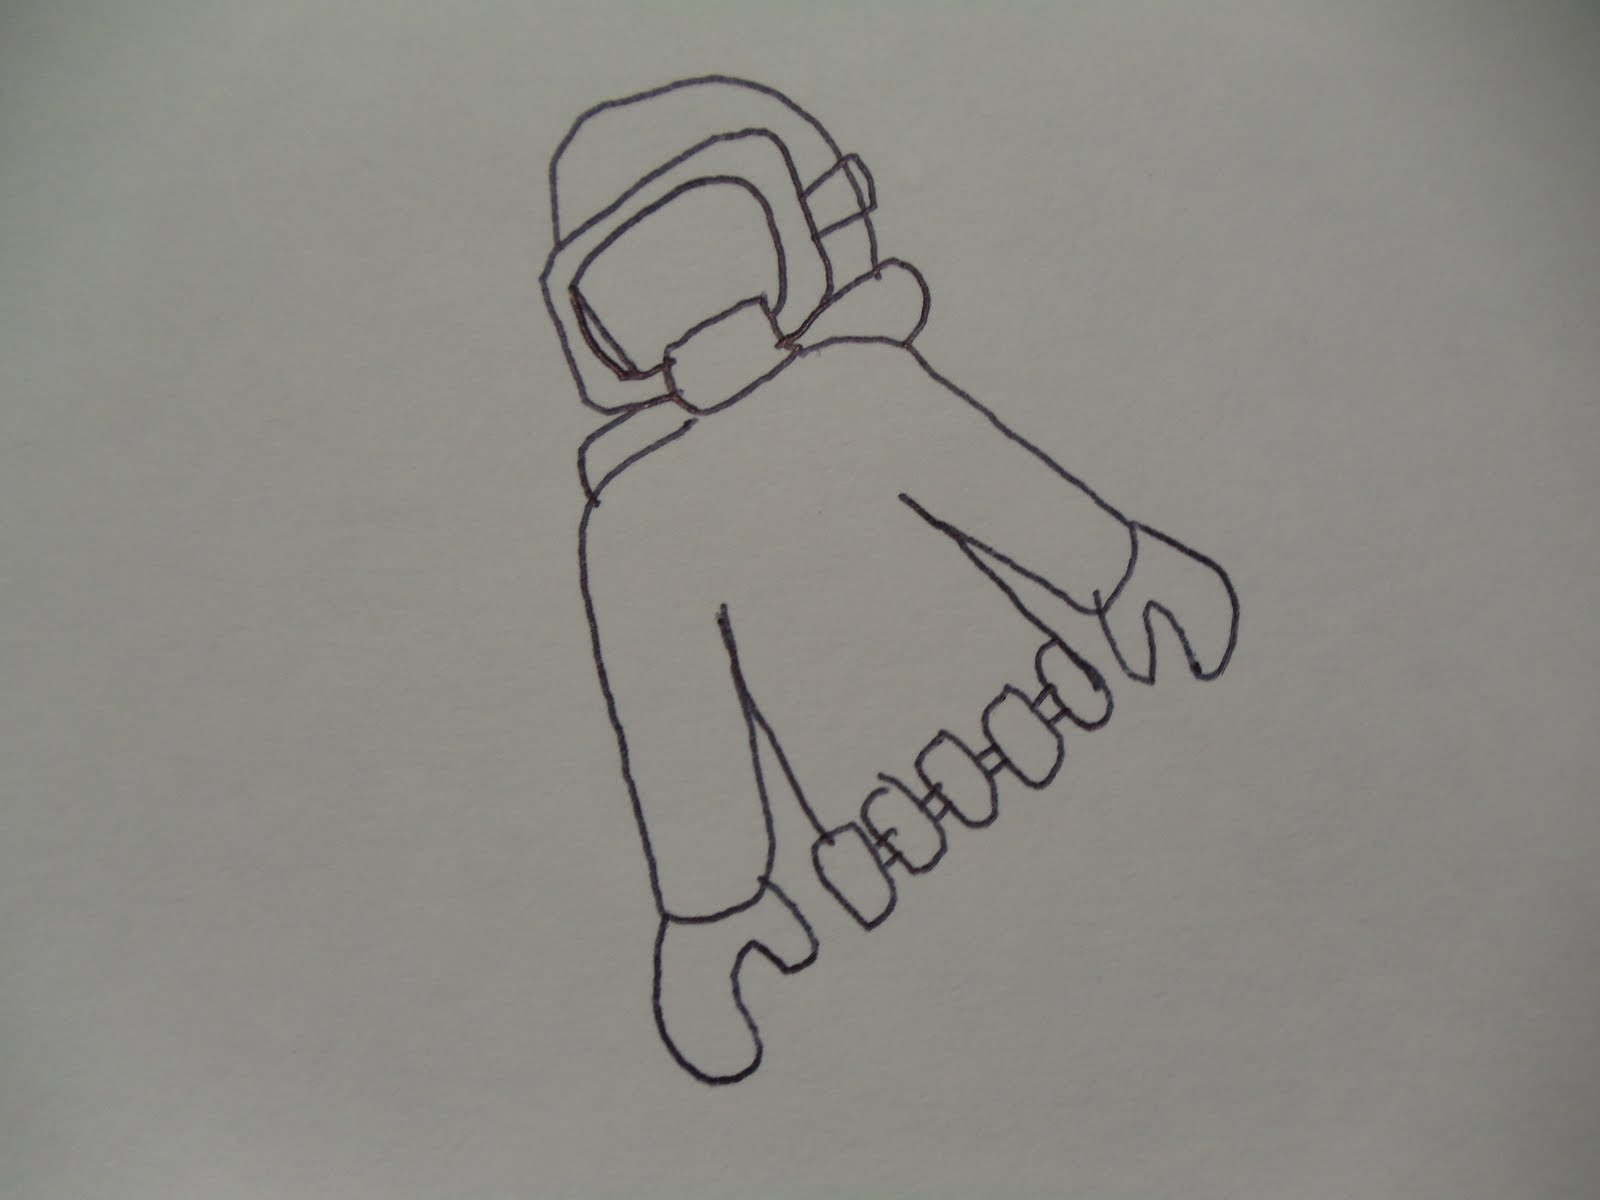 It's just an image of Nifty Scuba Diver Drawing